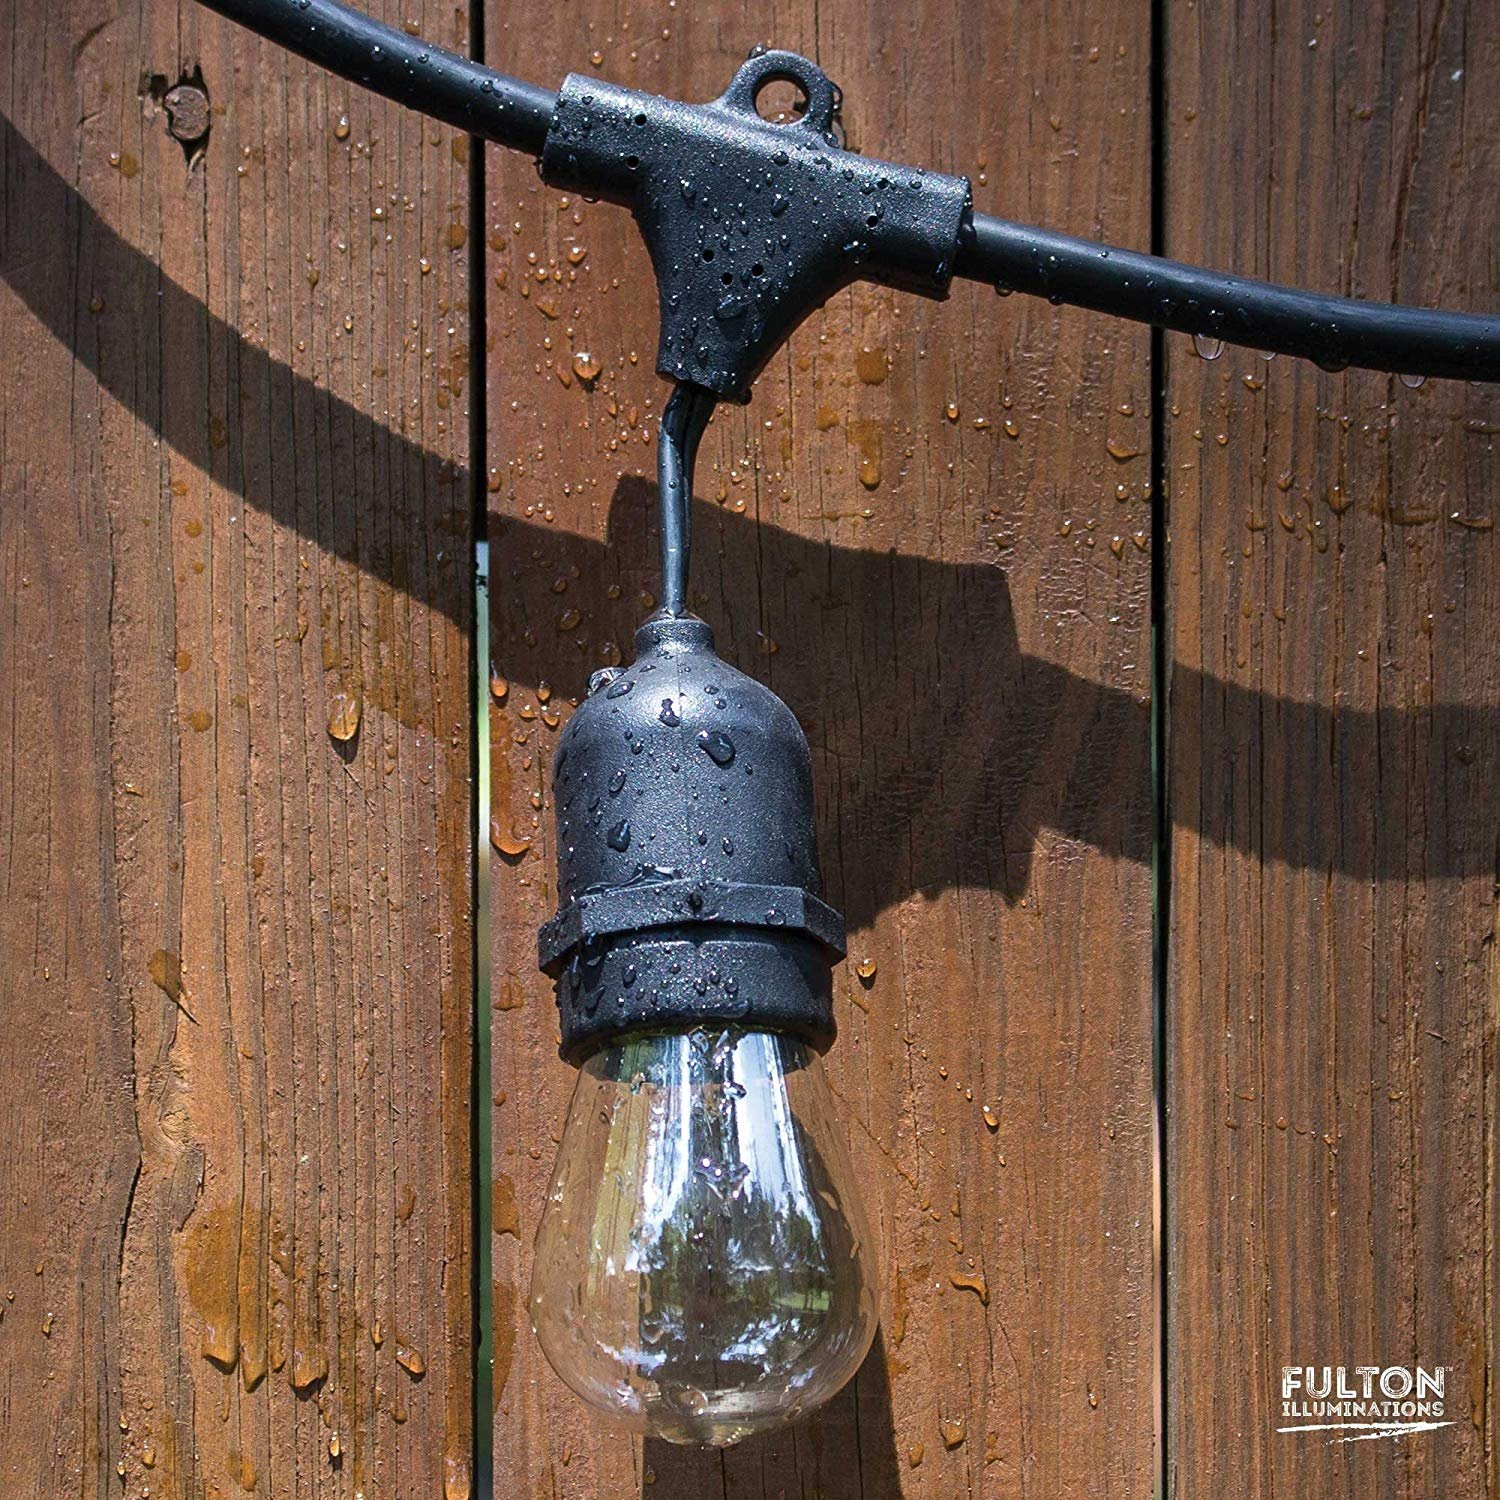 Fulton Illuminations S14 24 Bulbs Outdoor String Lights with 6 Extra Bulbs and 13 Ft Extension Cord, 48 Feet - Commercial Weatherproof Patio String Lights by Fulton Illuminations (Image #9)